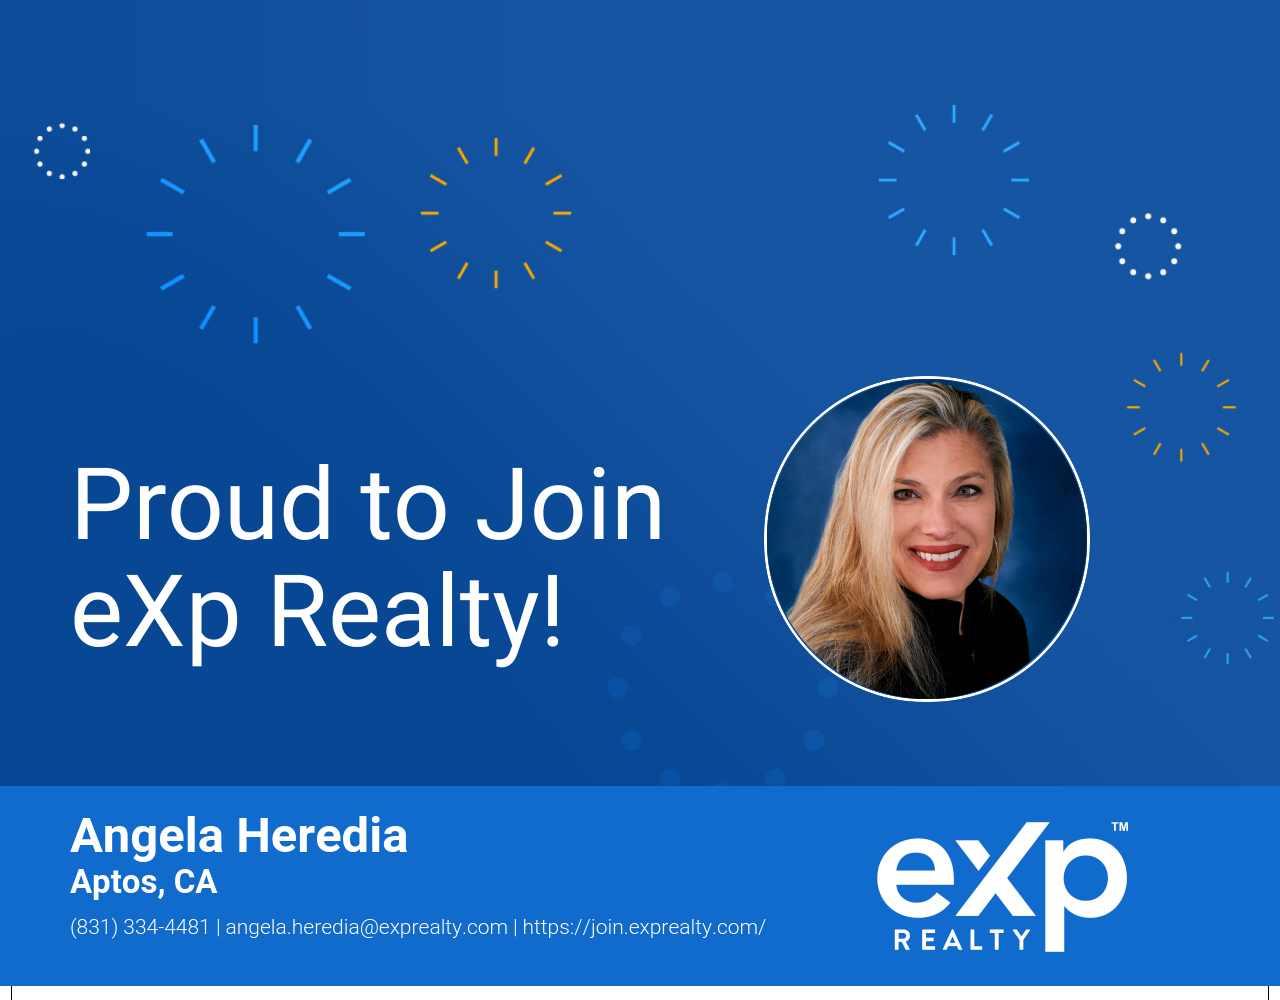 Angela Heredia Joined eXp Realty!